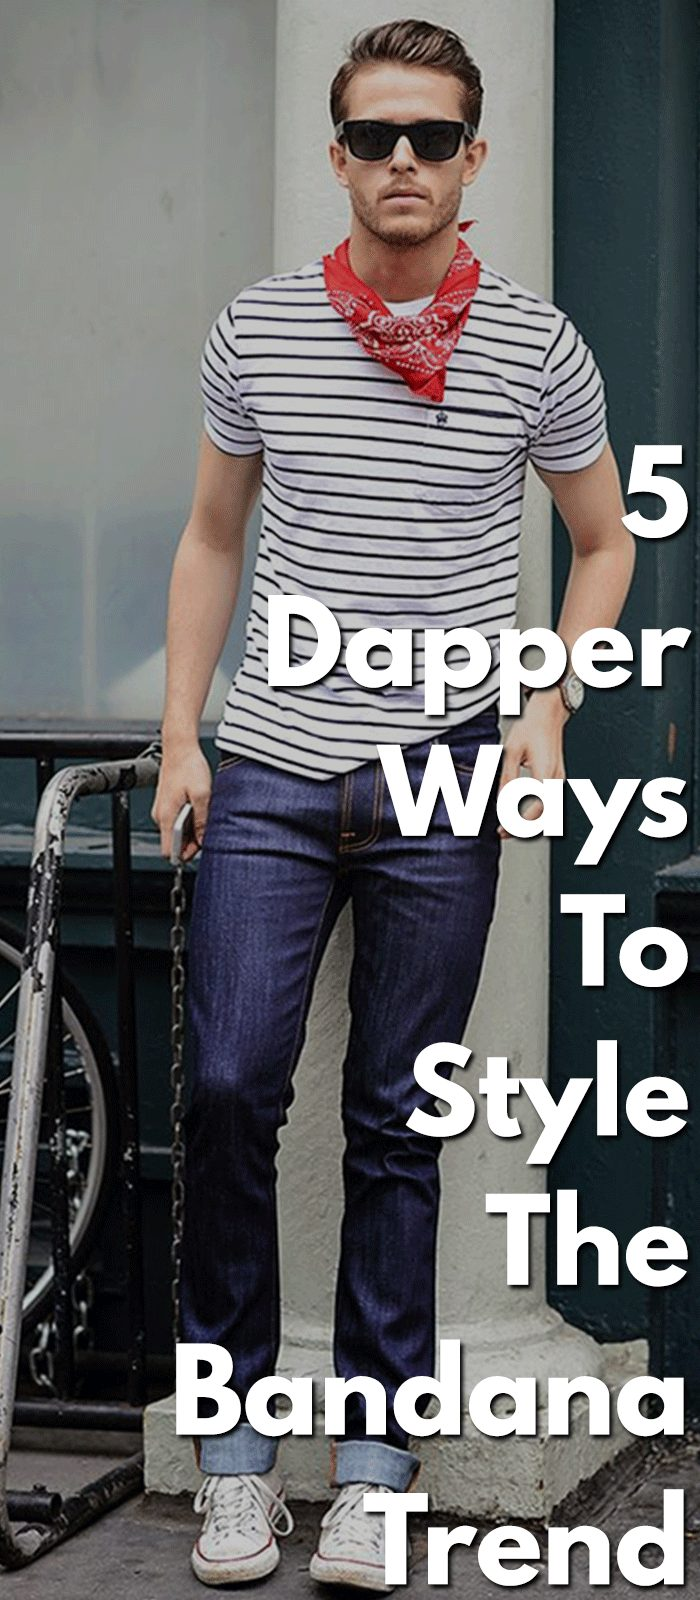 5 Dapper Ways To Style The Bandana Trend.